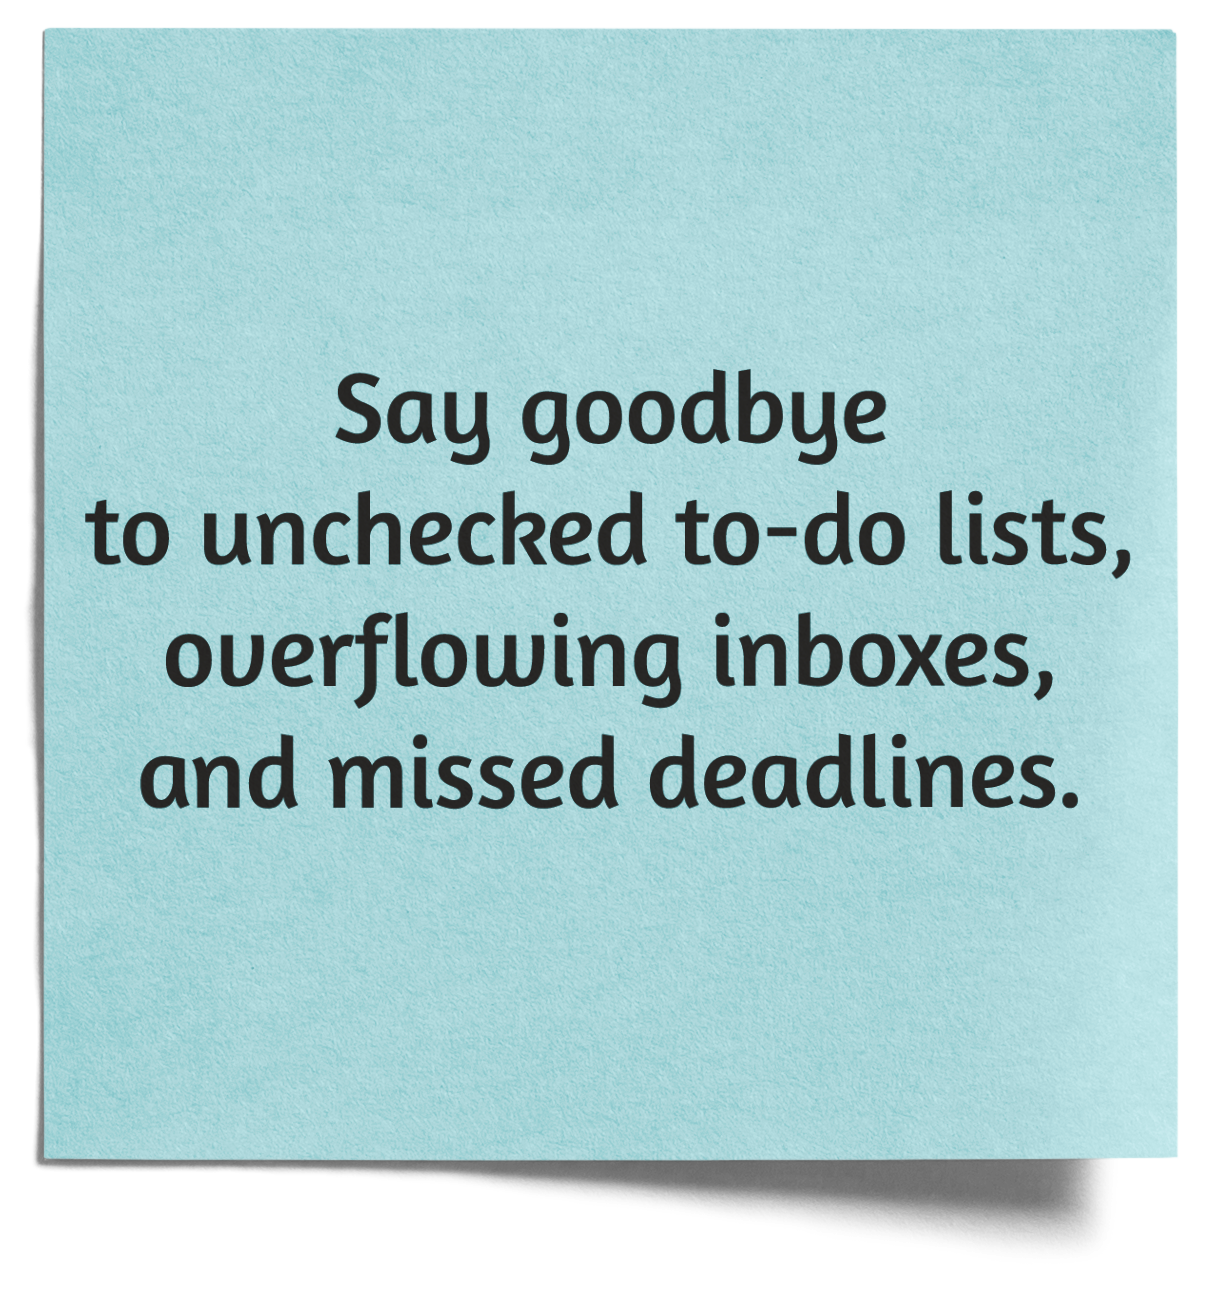 say goodbye to unchecked to do lists overflowing inboxes missed deadlines